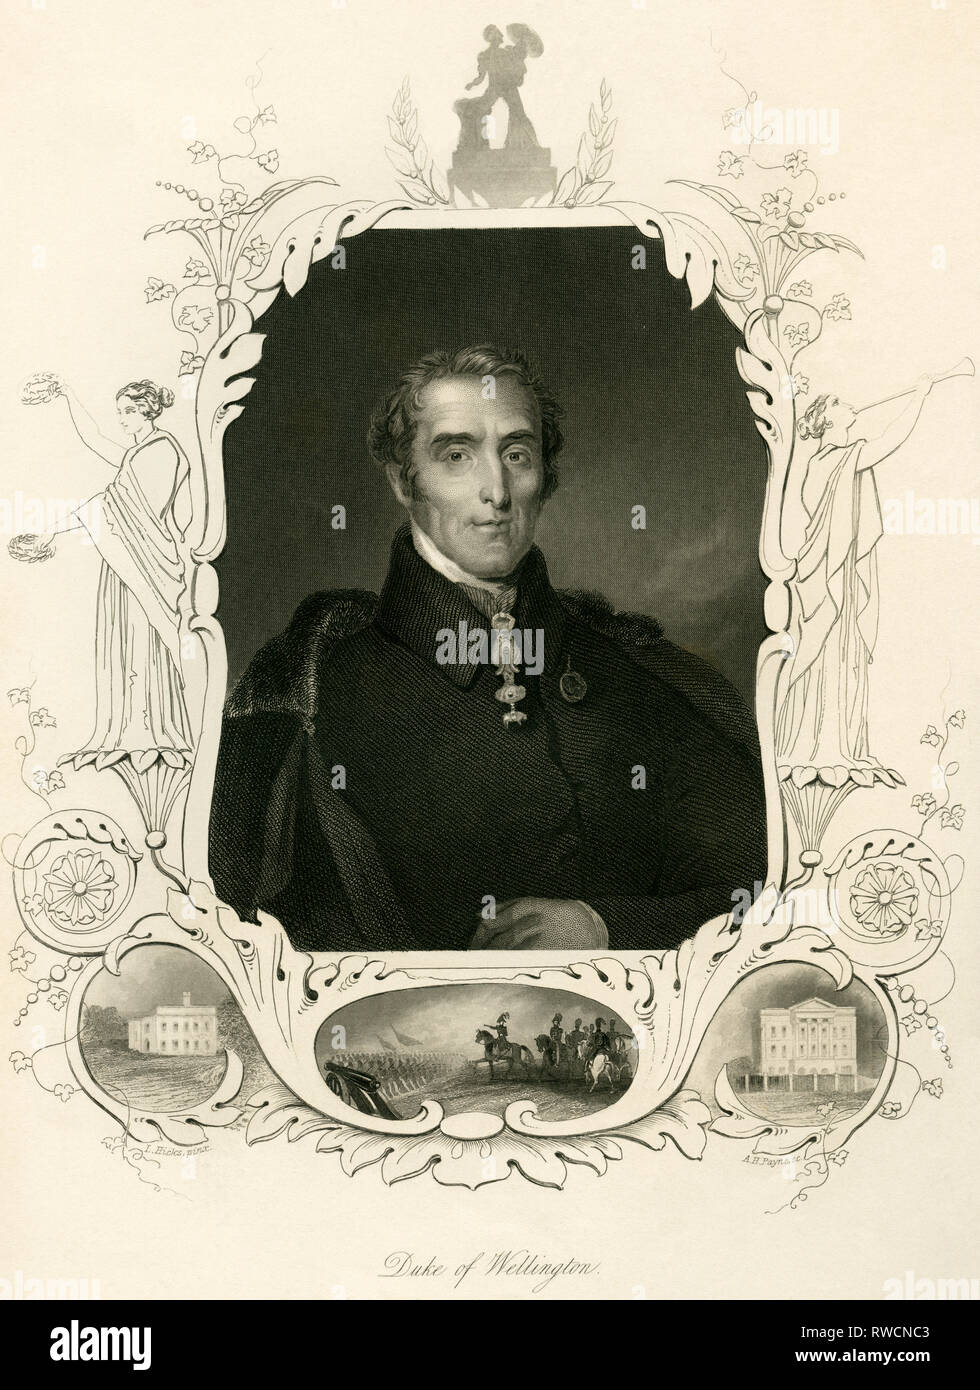 Ireland, Dublin. Great Britain, Duke of Wellington (Arthur Wellesley?), steel engraving by A. H. Payne after L. Hicks, around 1840., Artist's Copyright has not to be cleared - Stock Image